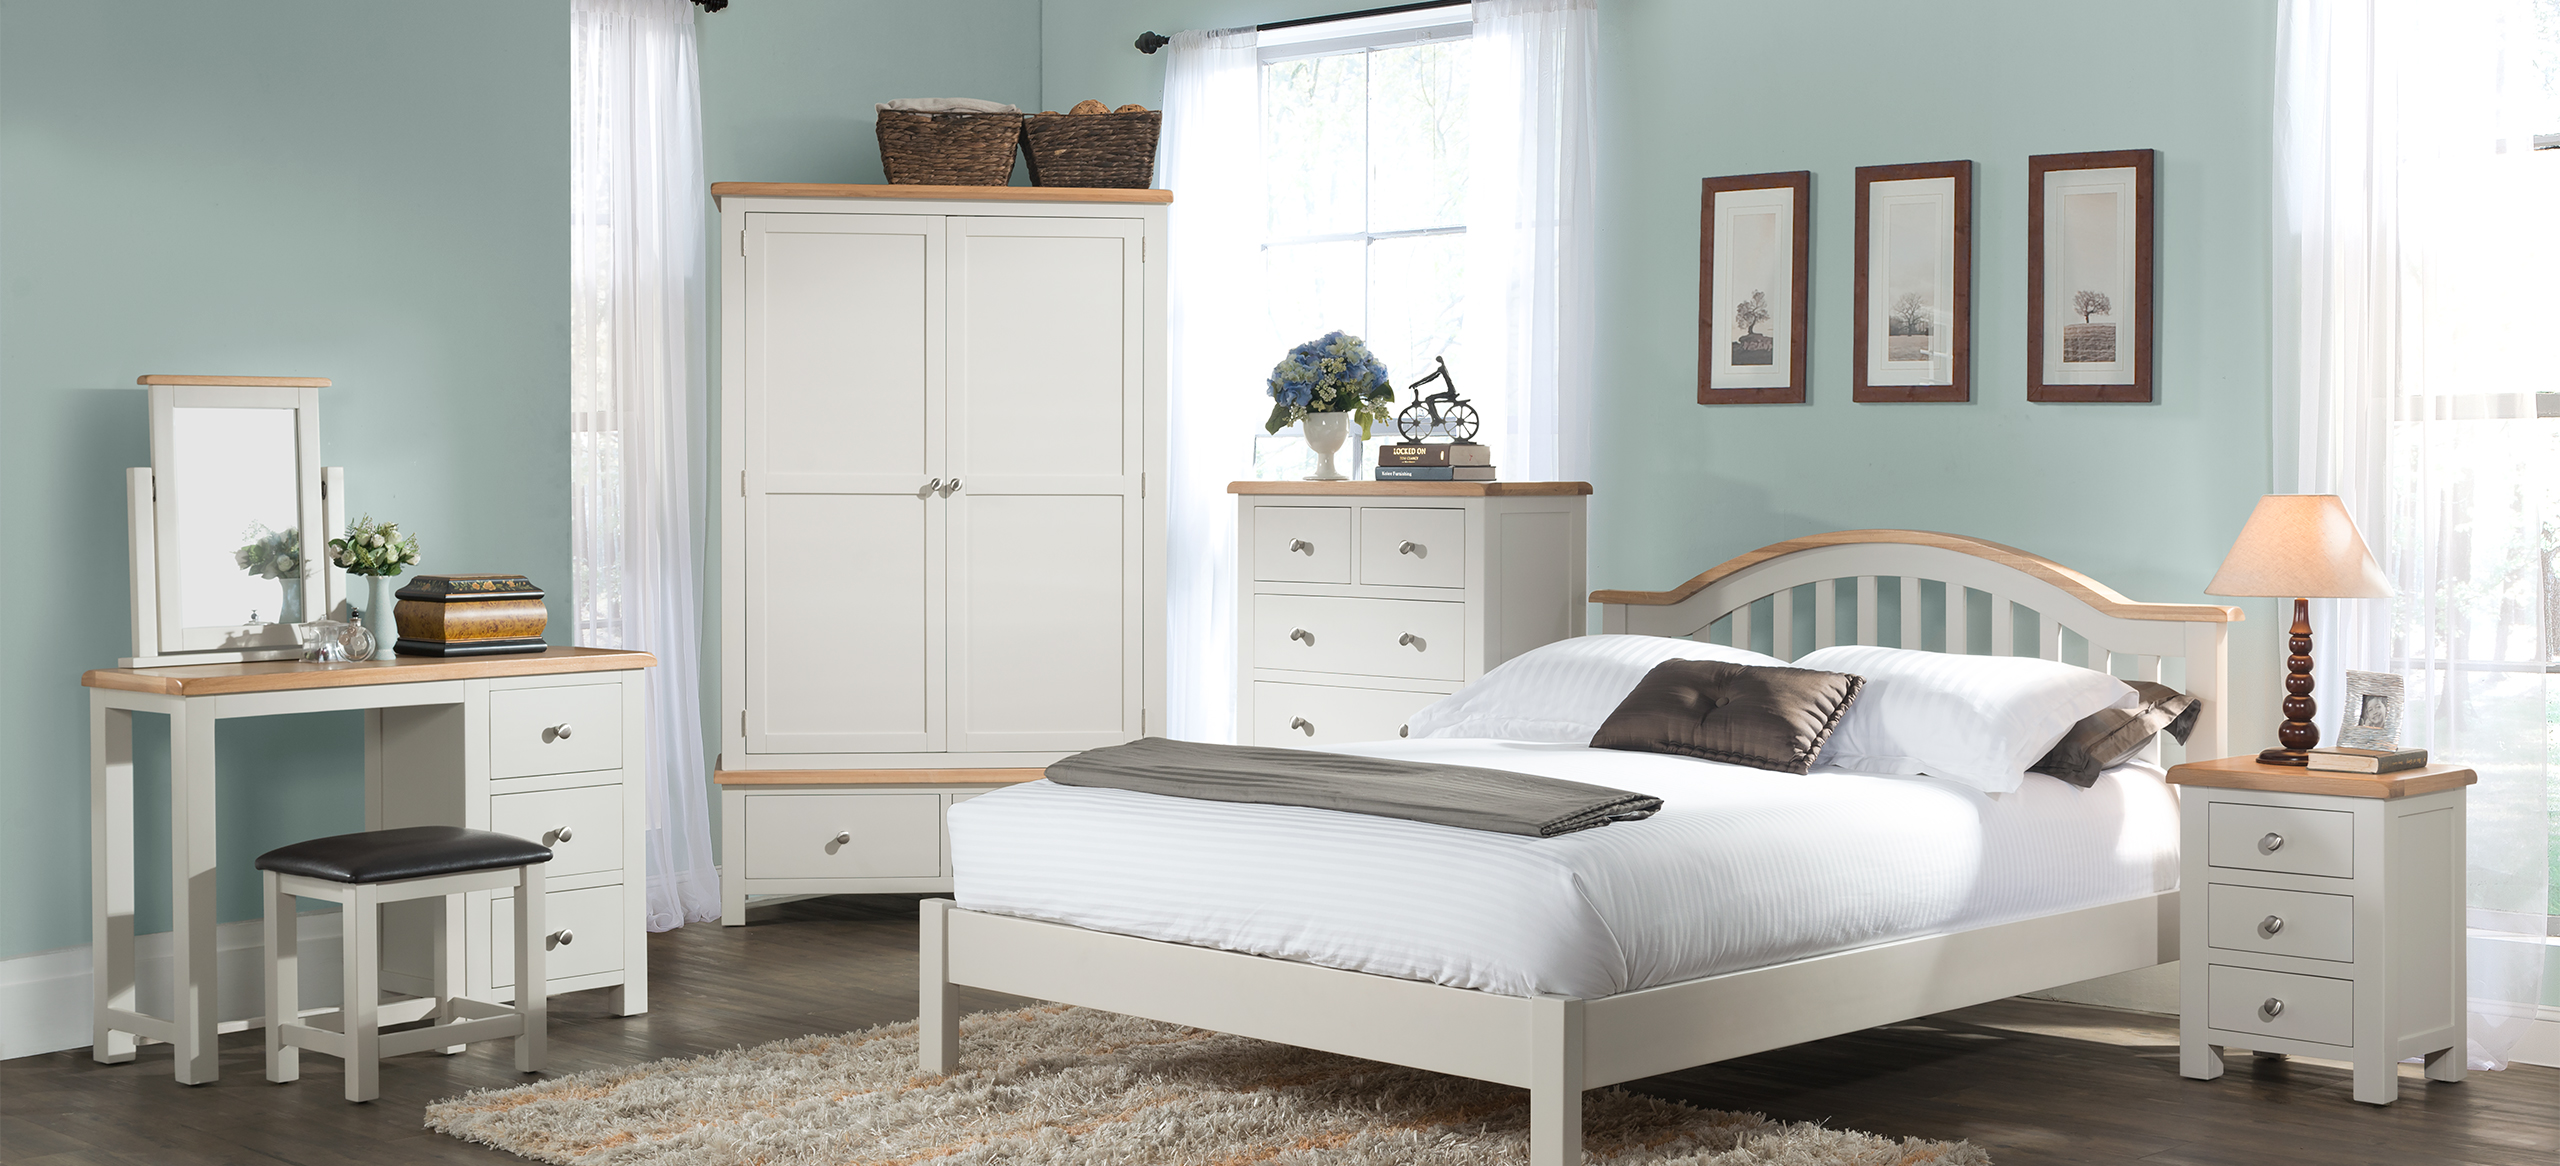 Washington collection Bedroom furniture